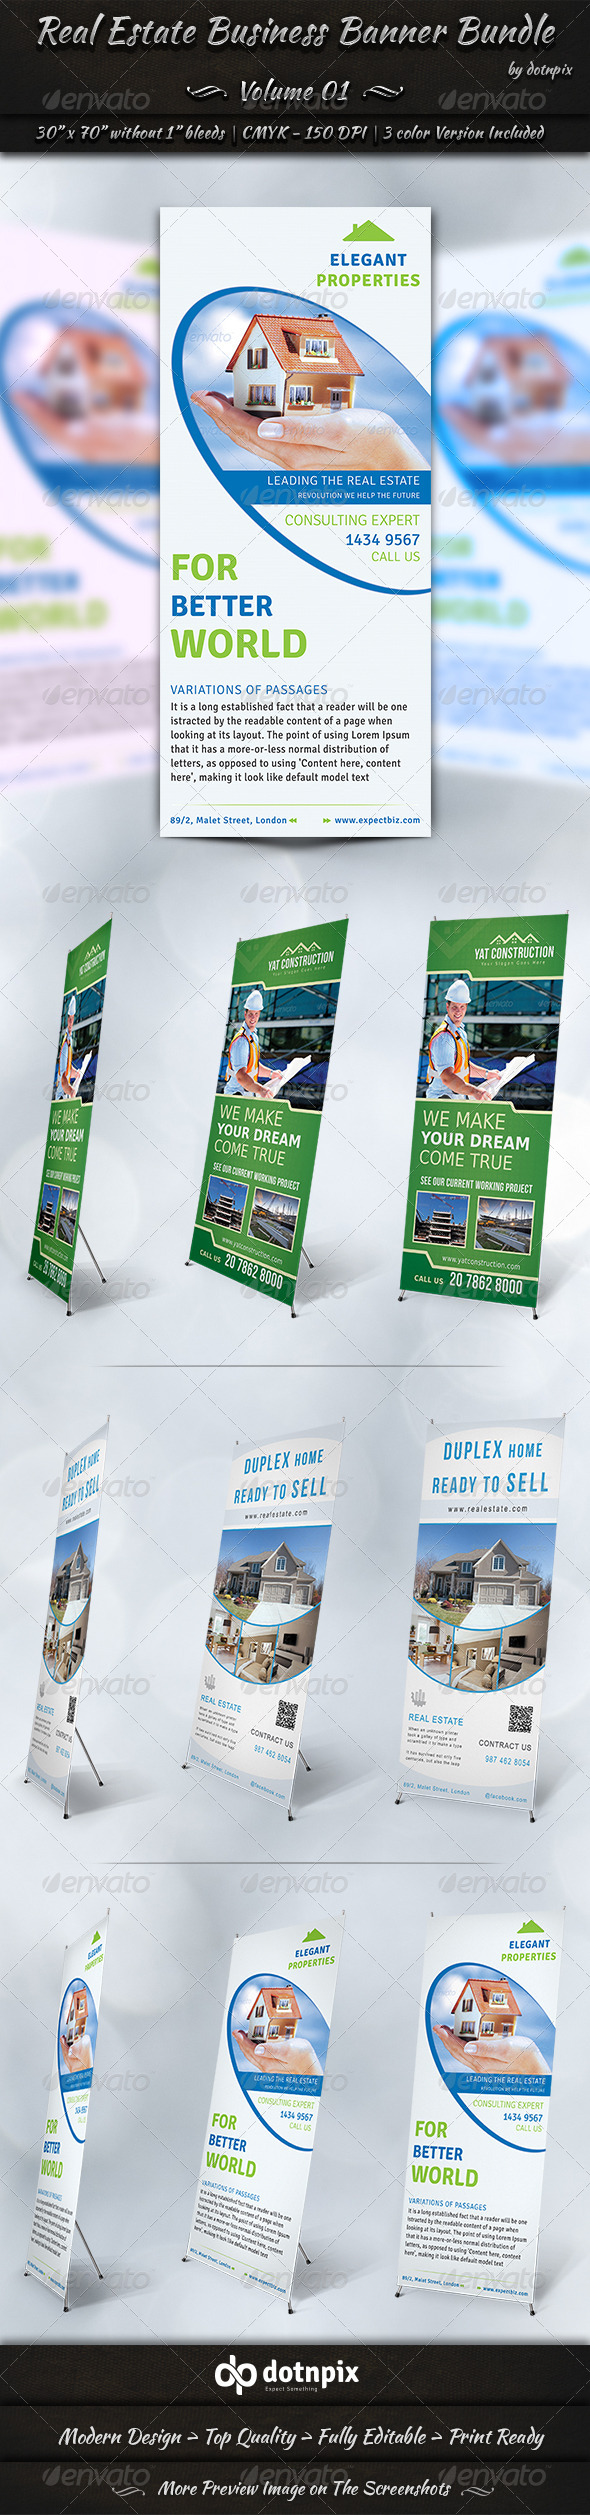 GraphicRiver Real Estate Business Banner Bundle Volume 1 7236882